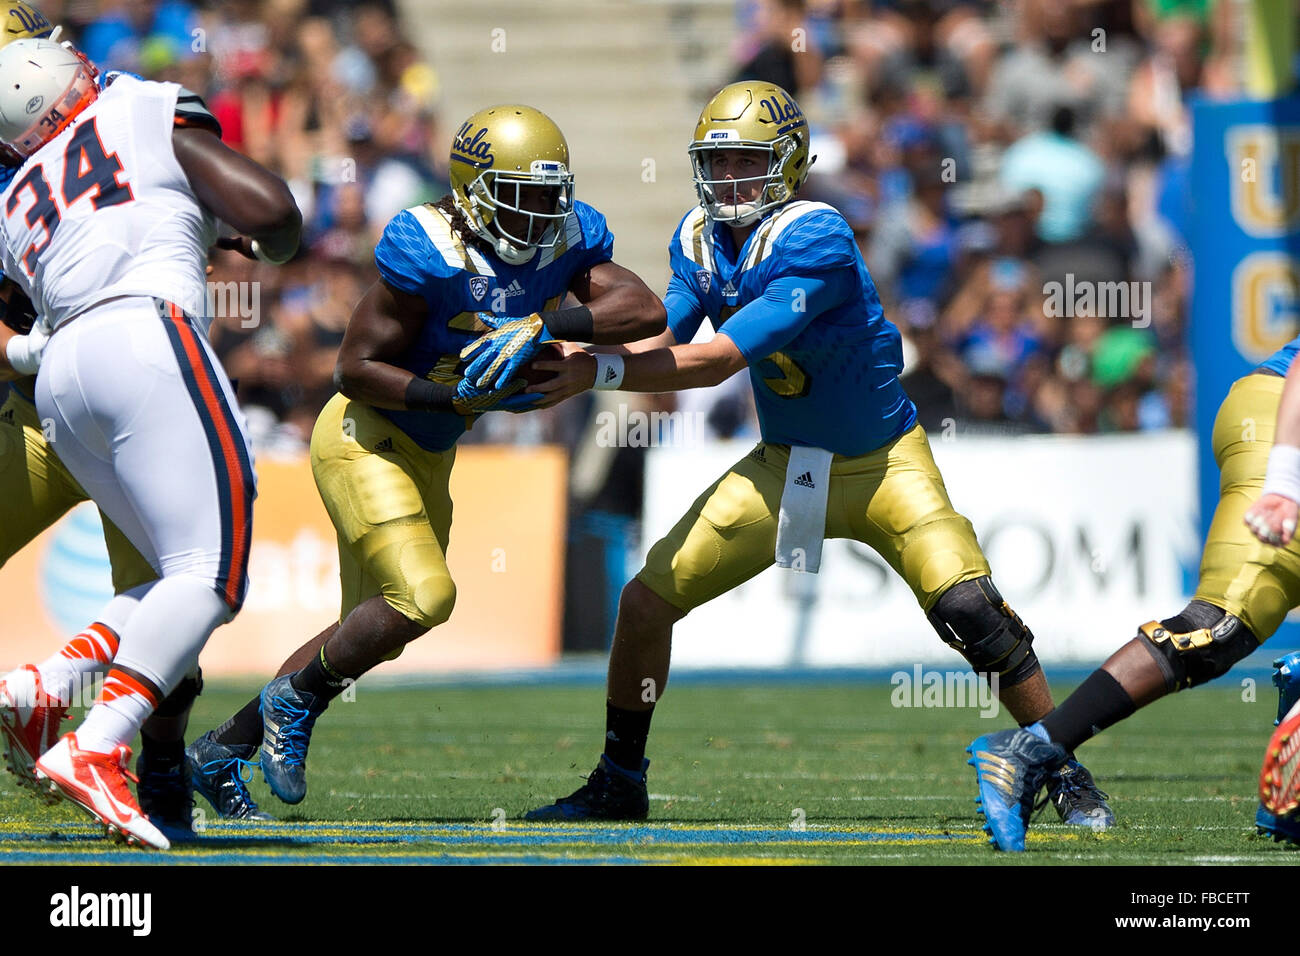 Quarterback Josh Rosen #3 of the UCLA Bruins hands off to running back Paul Perkins #24 during the first quarter - Stock Image